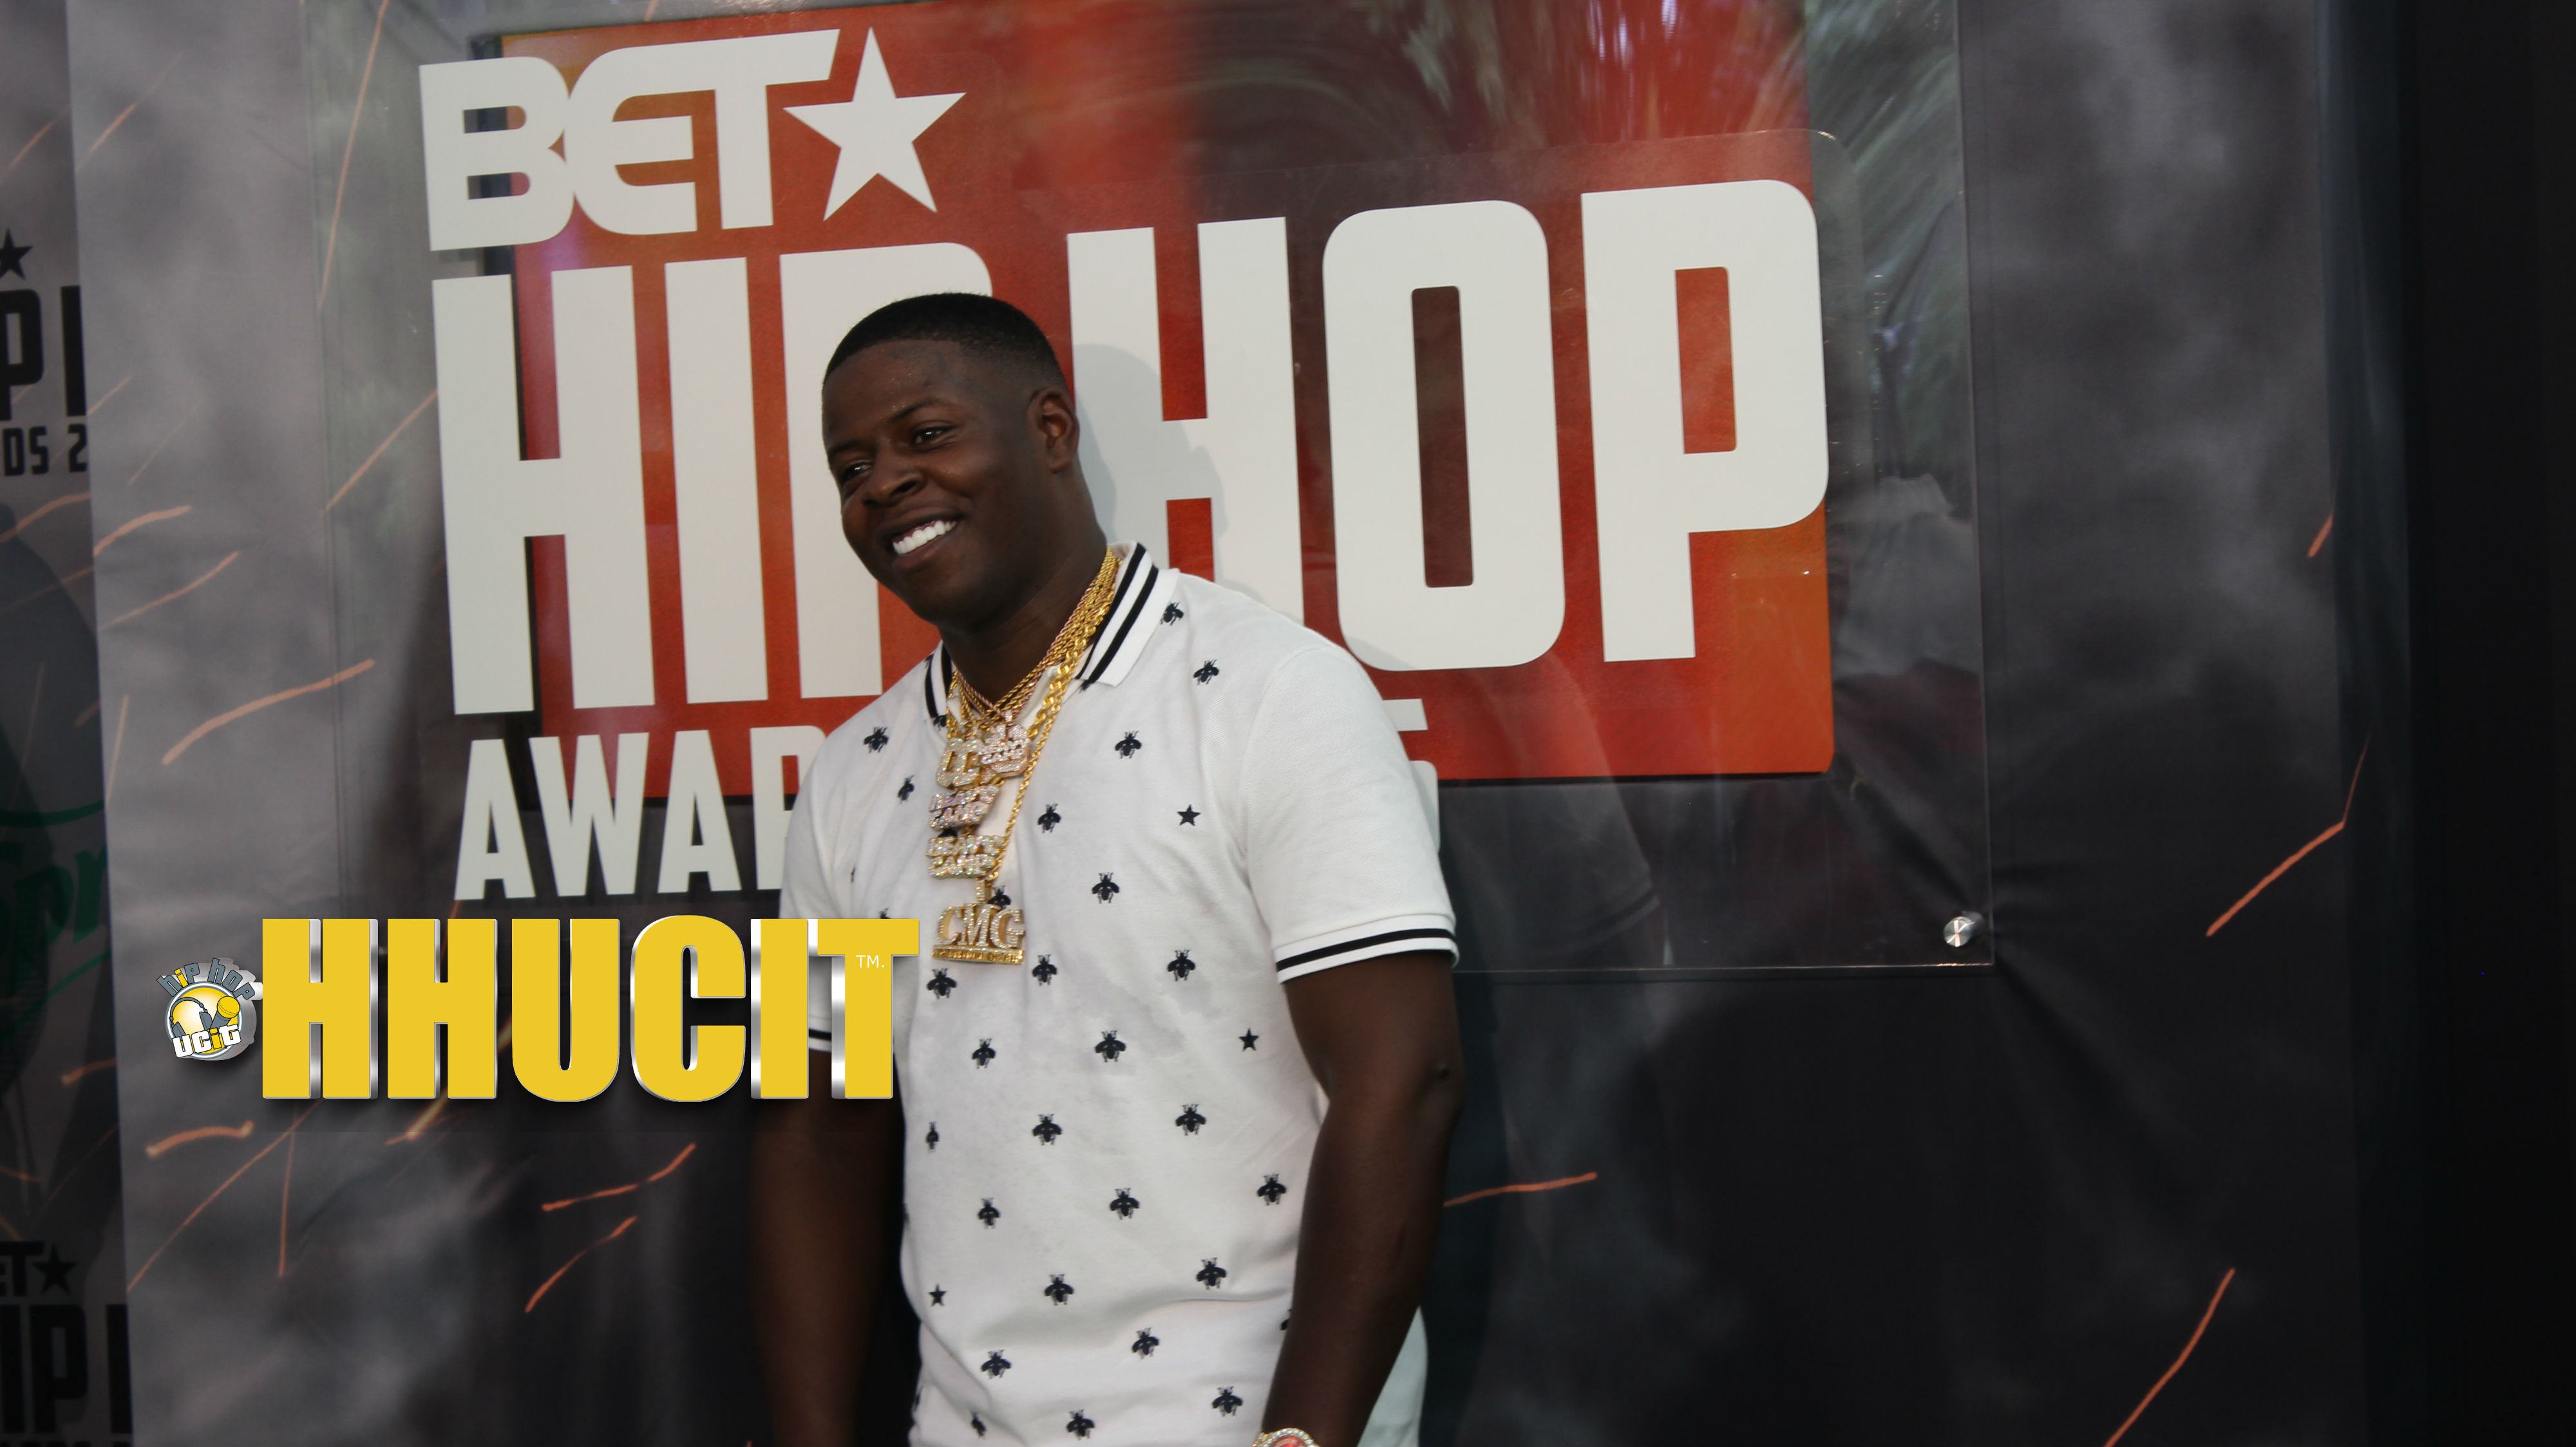 Exclusive #HHUCIT Interviews & Coverage From the 2016 BET Hip Hop Awards [VIDEO]